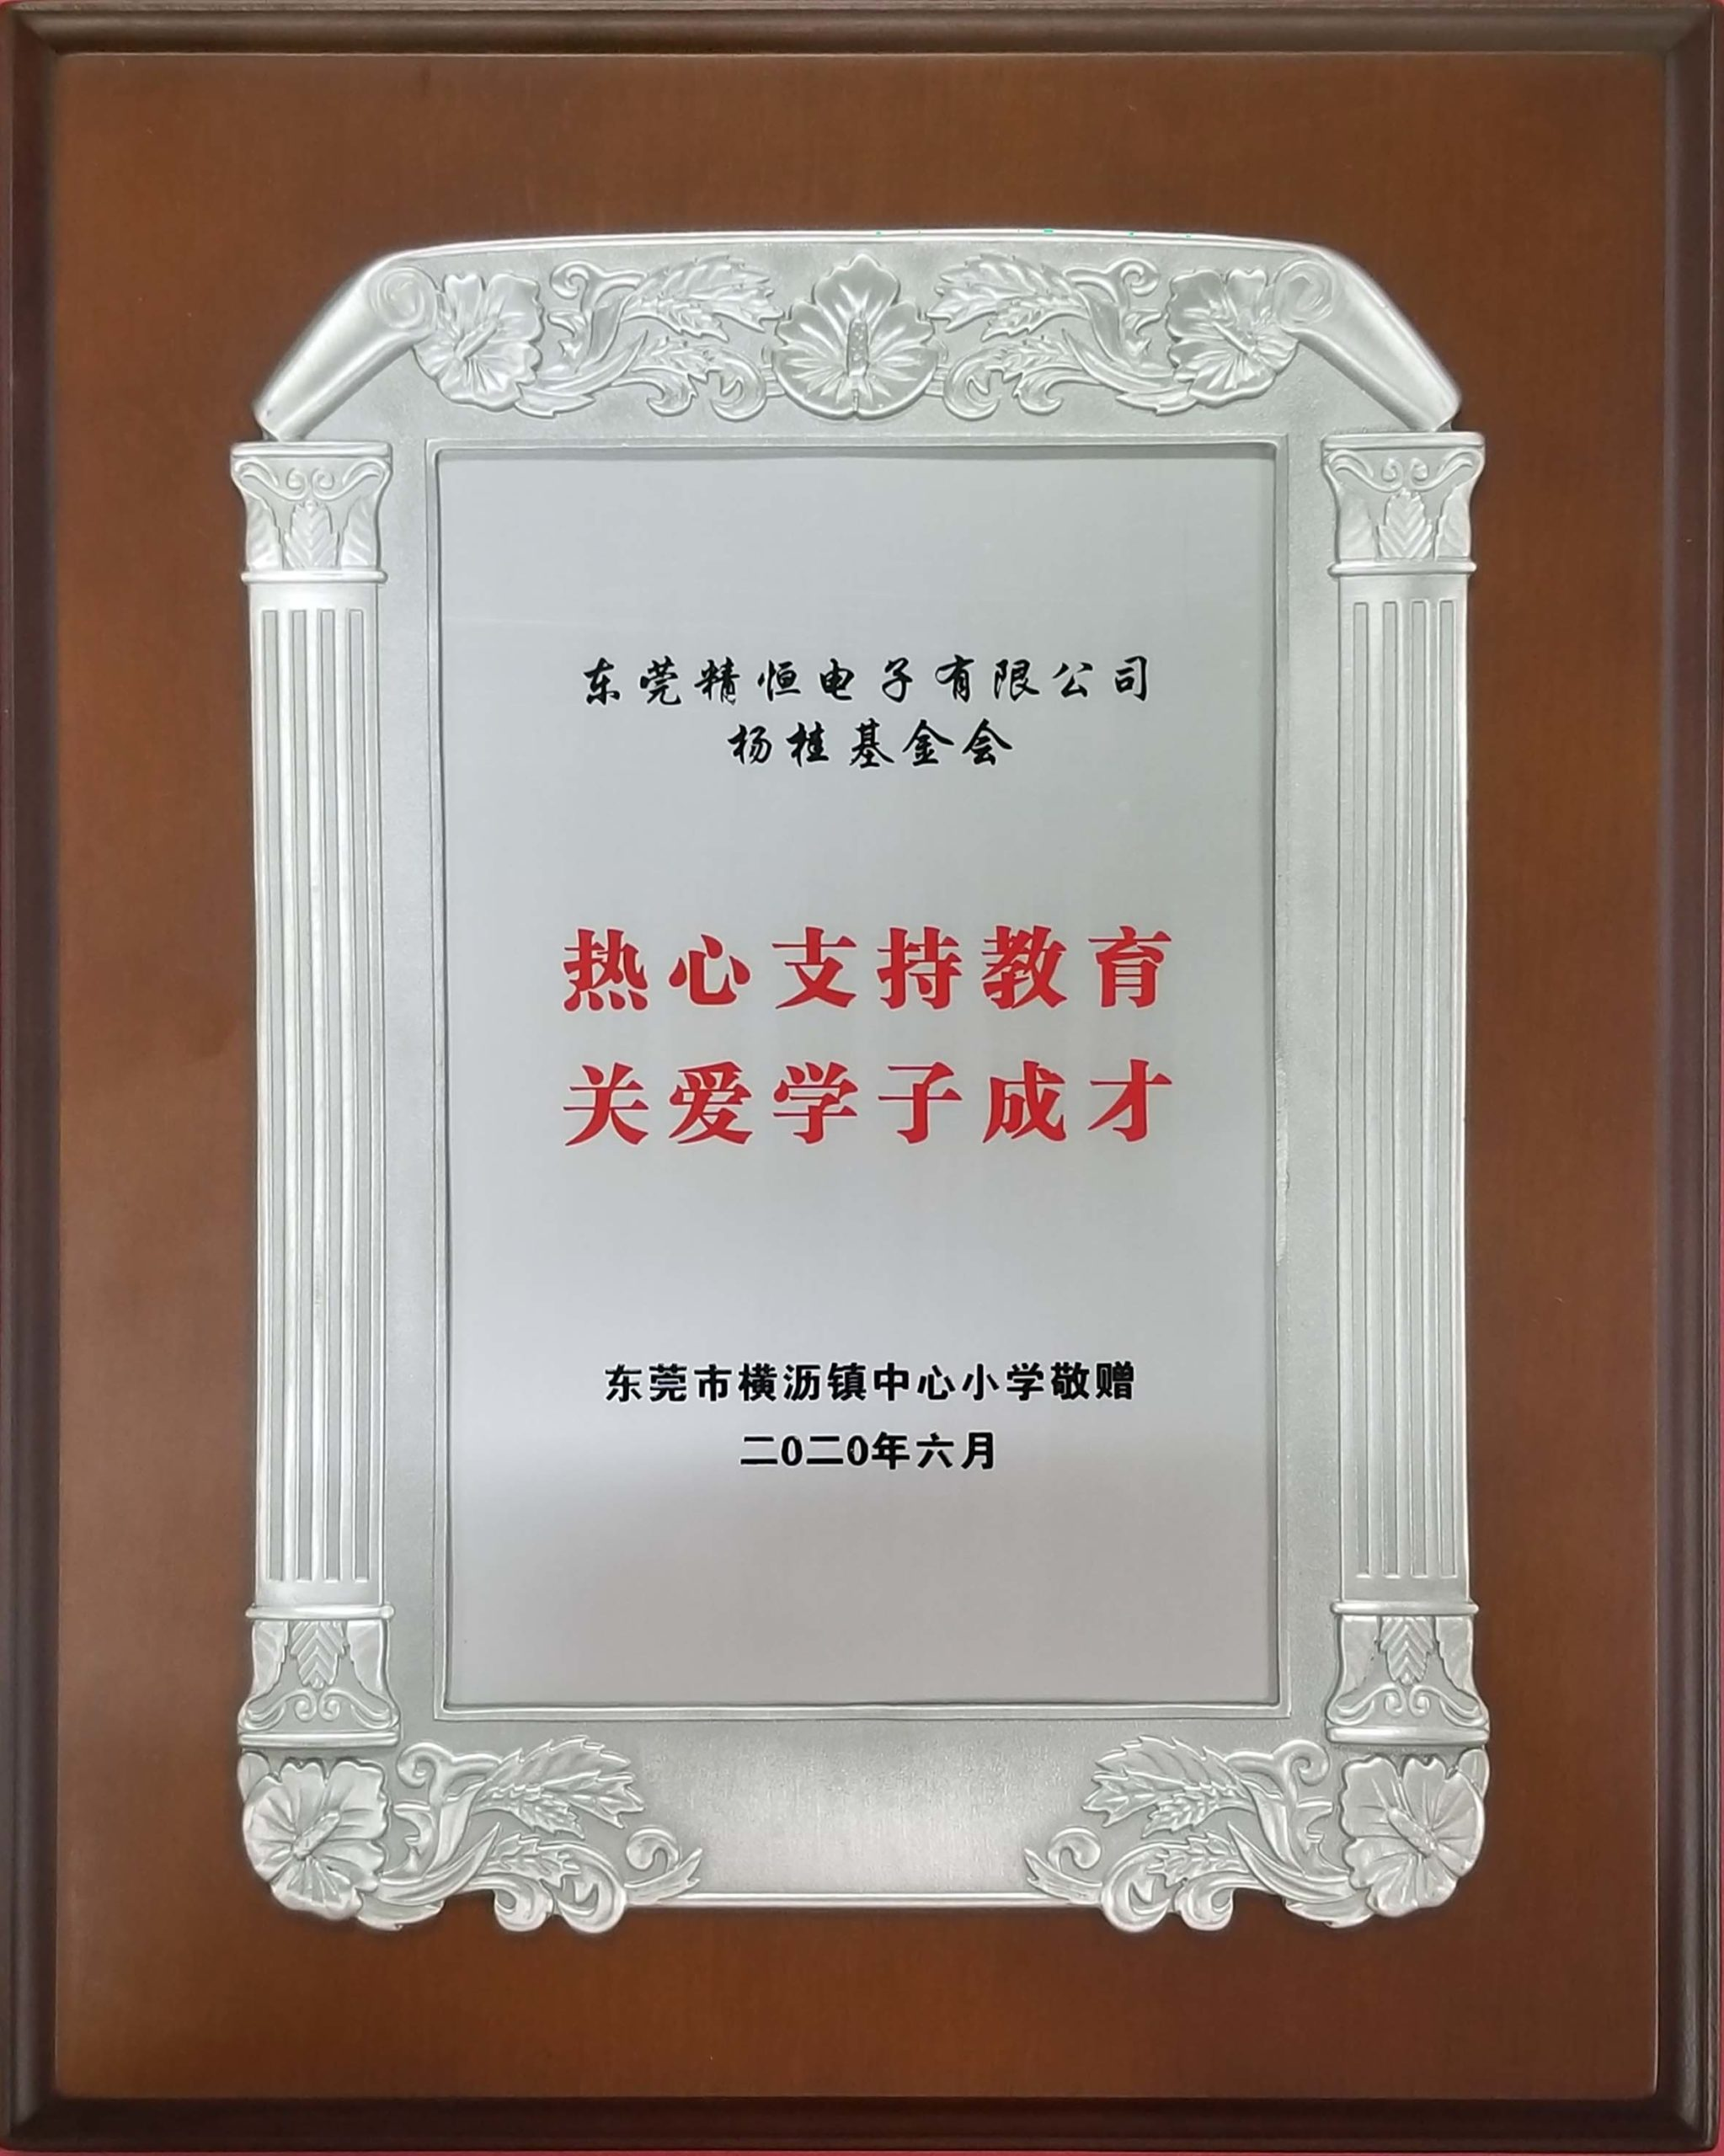 2020, JUNE – The plaque of charity deeds